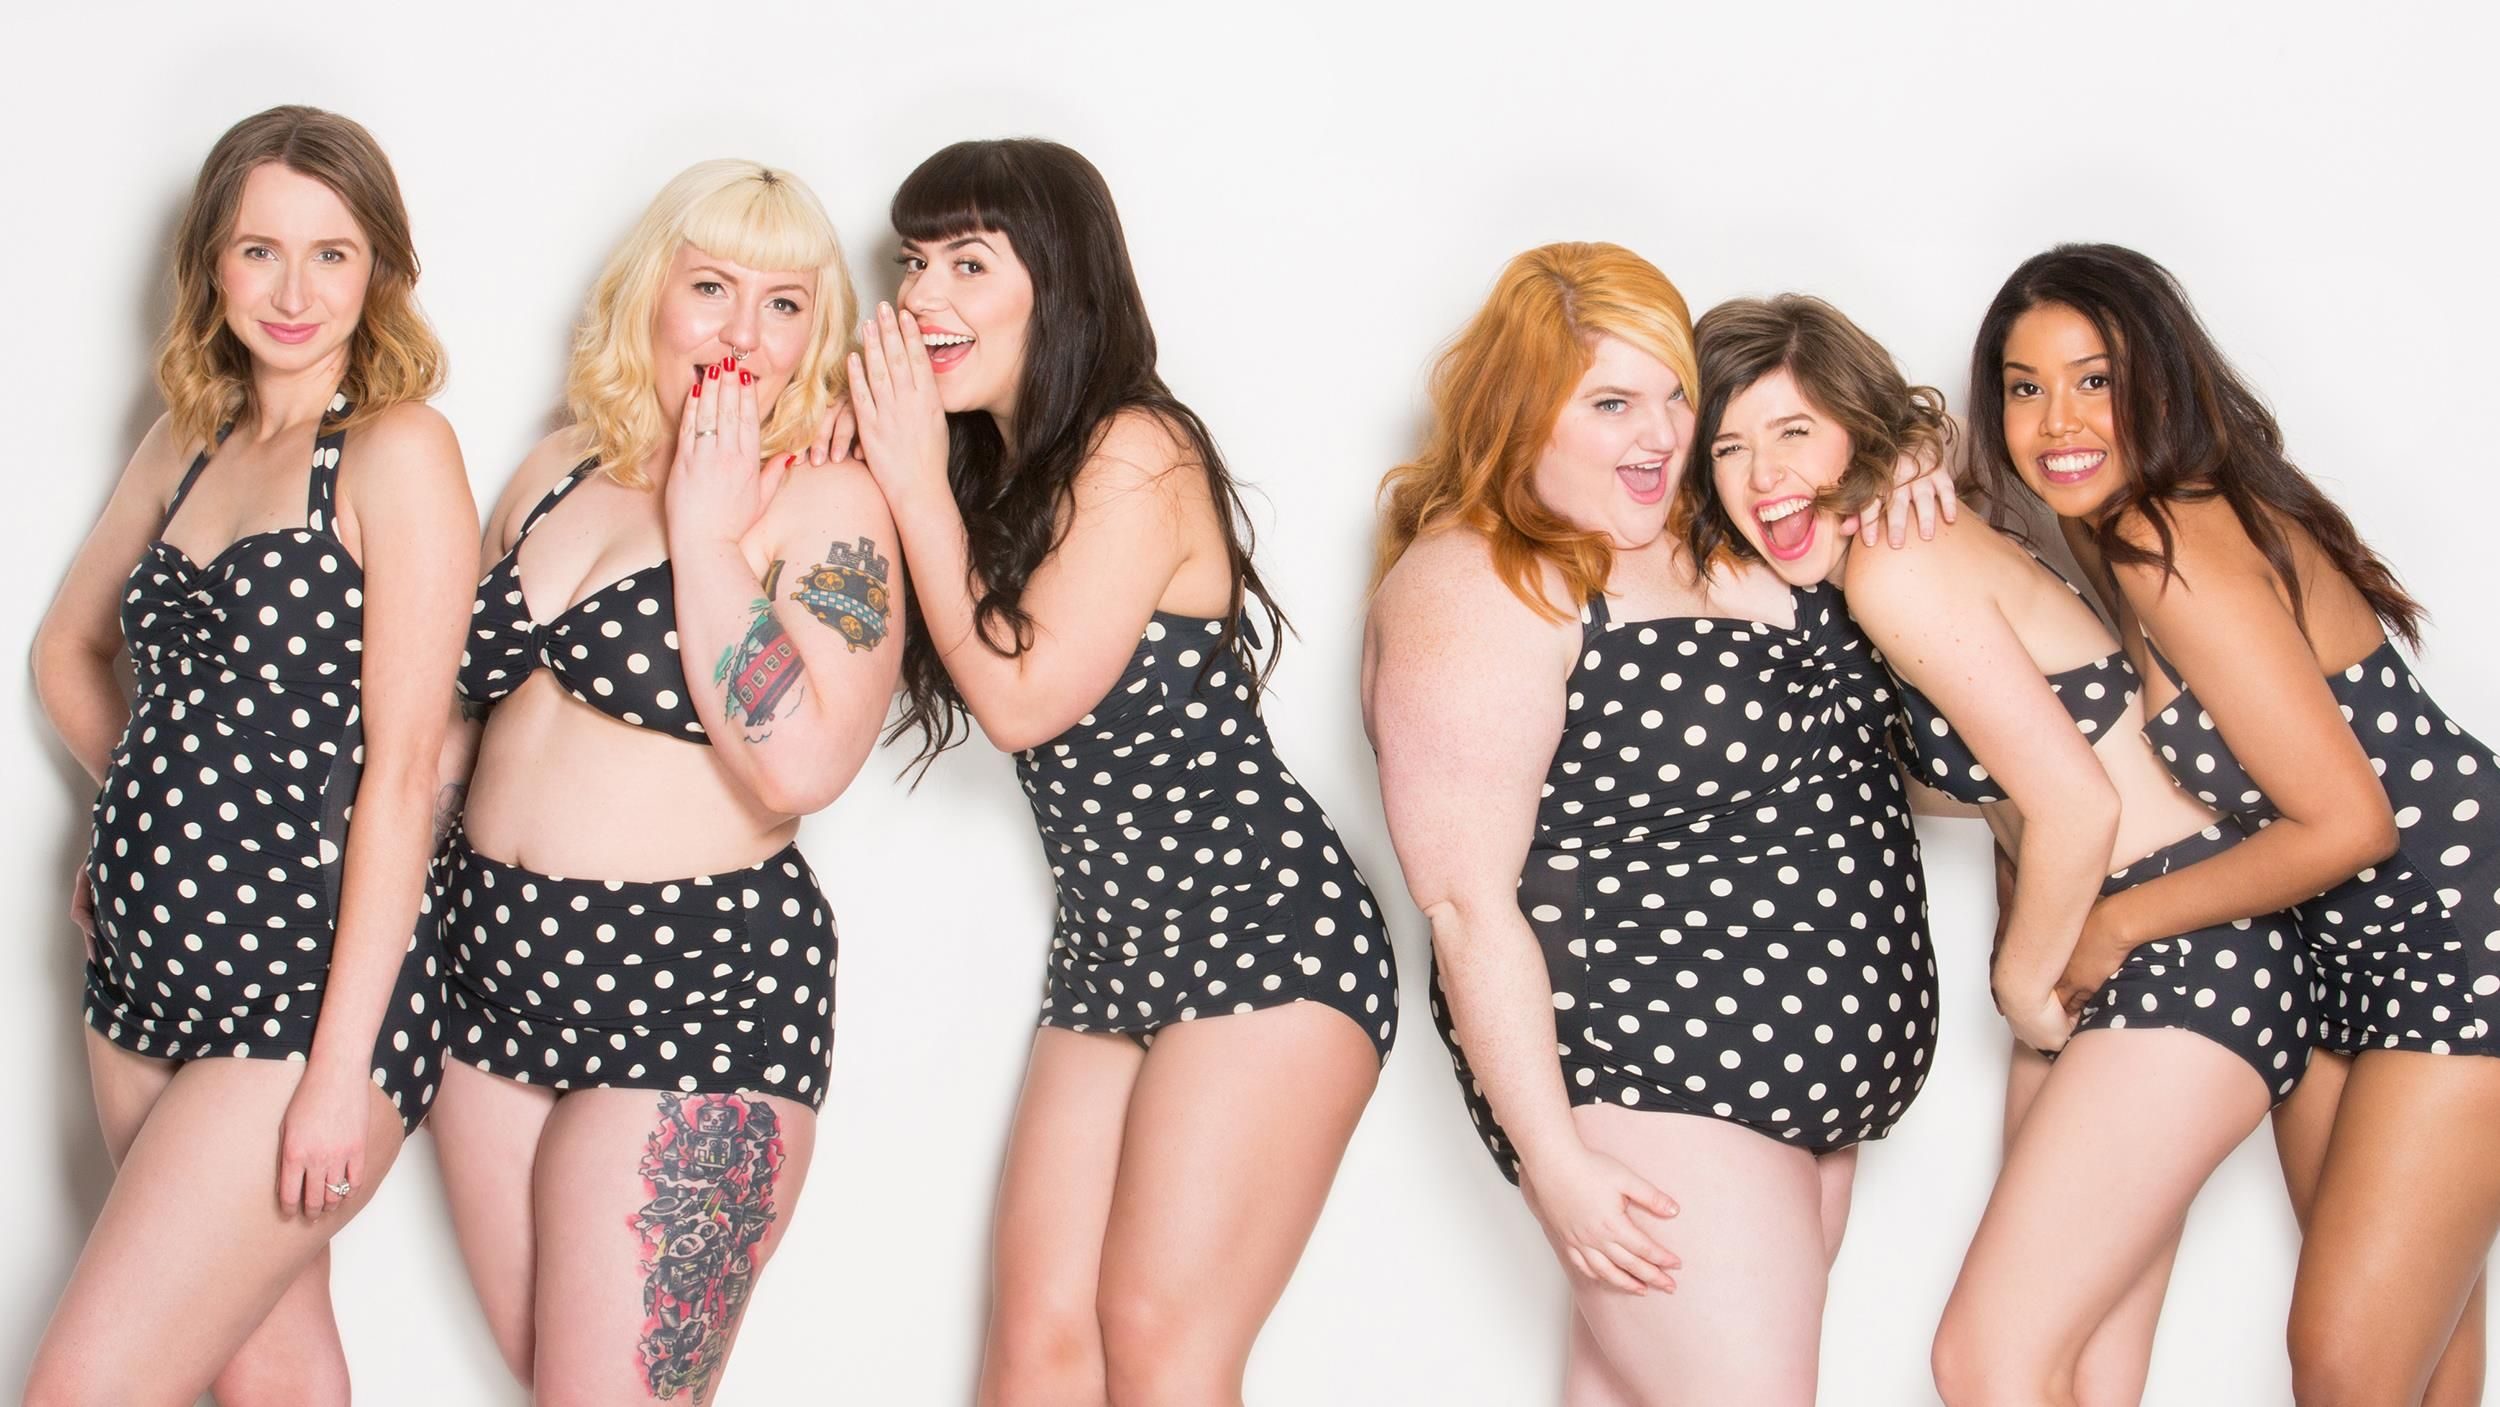 5 Life-Changing Revelations About Women and Body Image